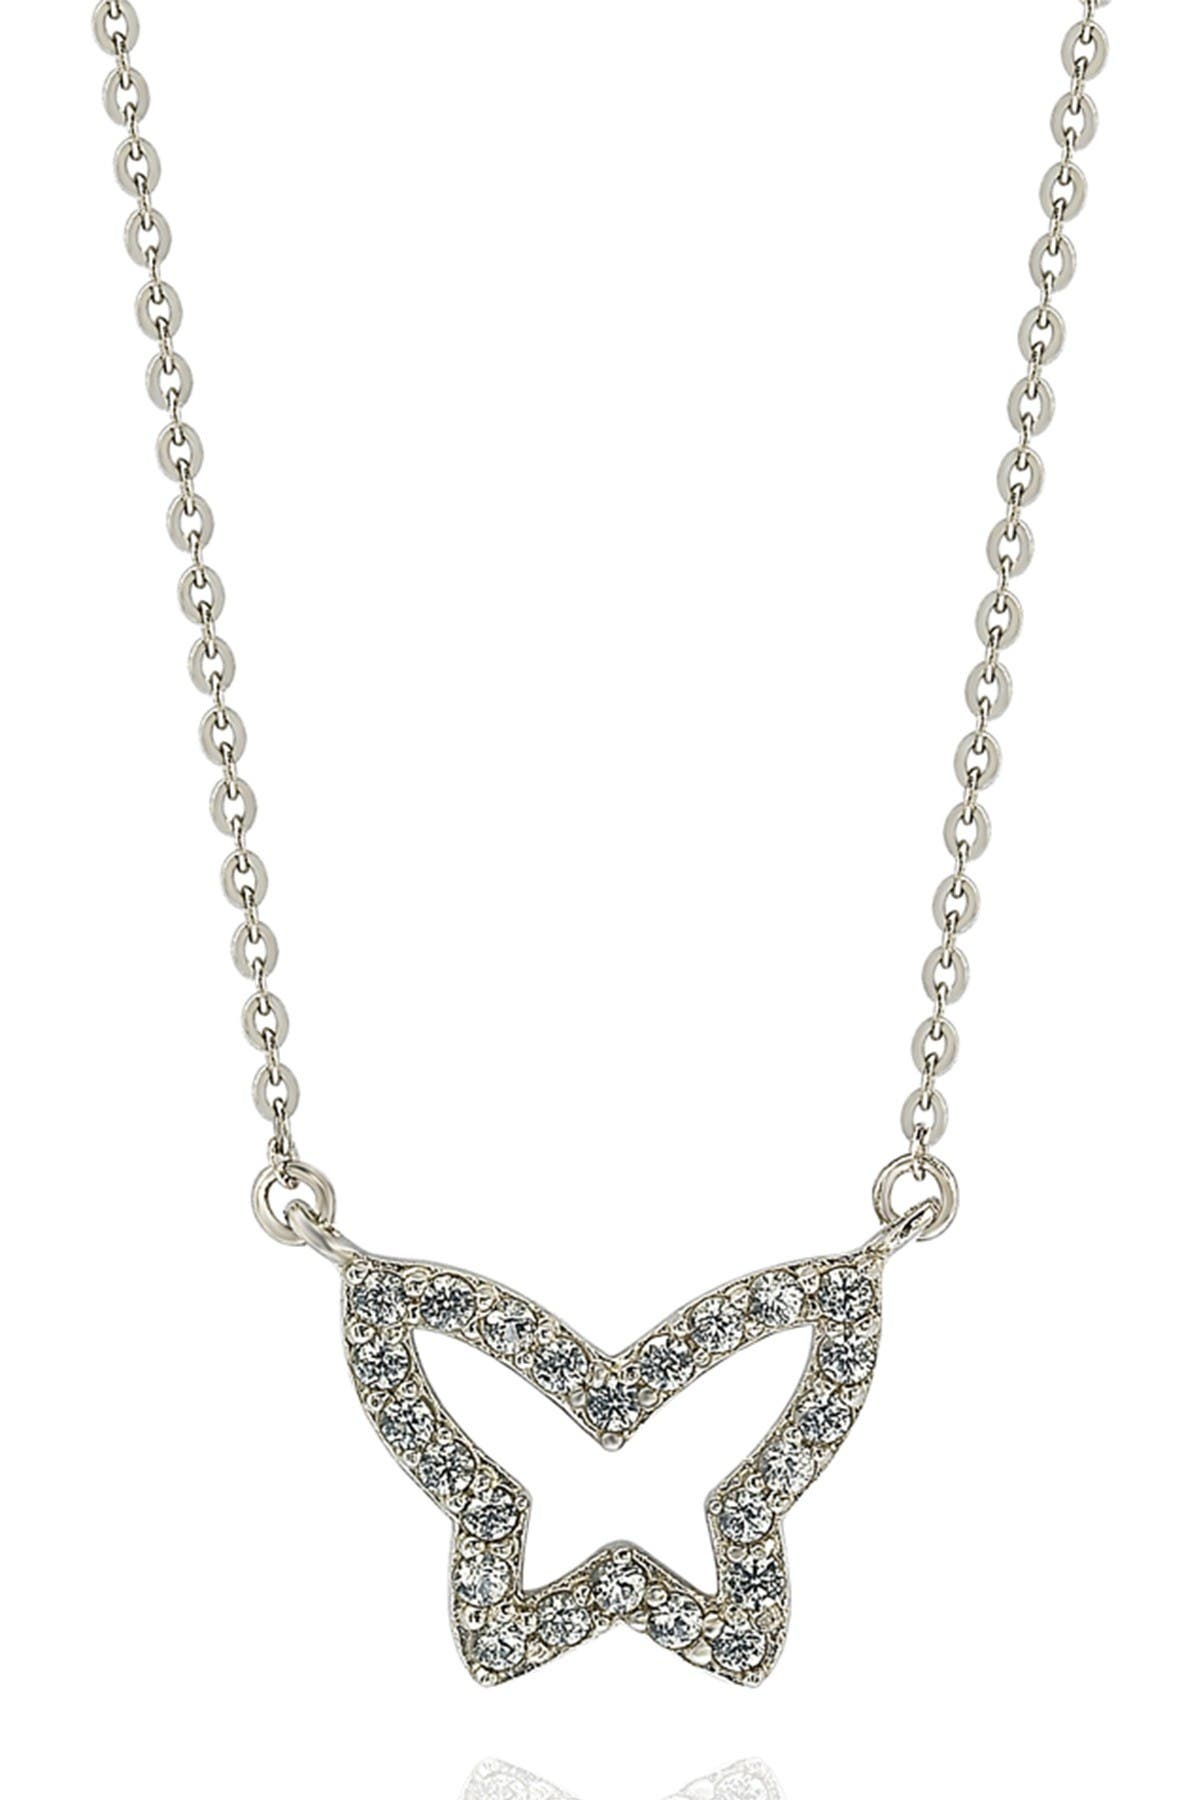 Image of Suzy Levian 14K White Gold Diamond Butterfly Necklace - 0.30ctw